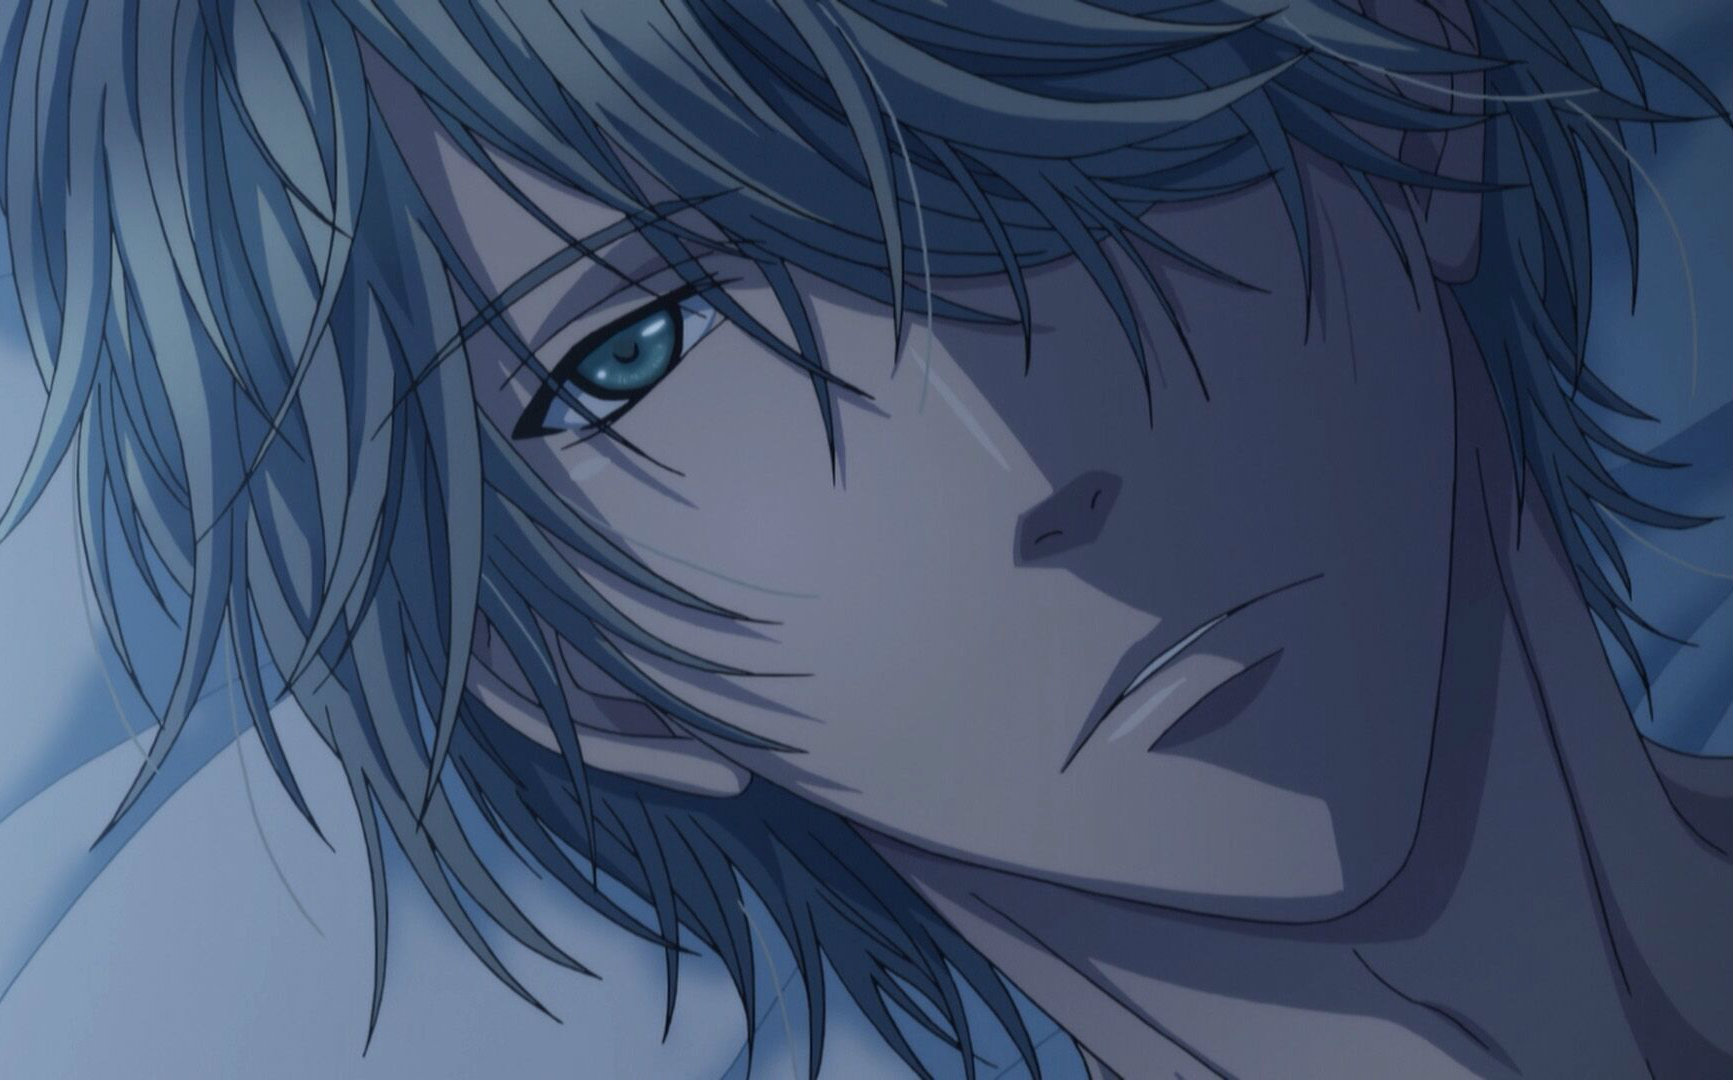 【1月】SUPER LOVERS 第二季 02